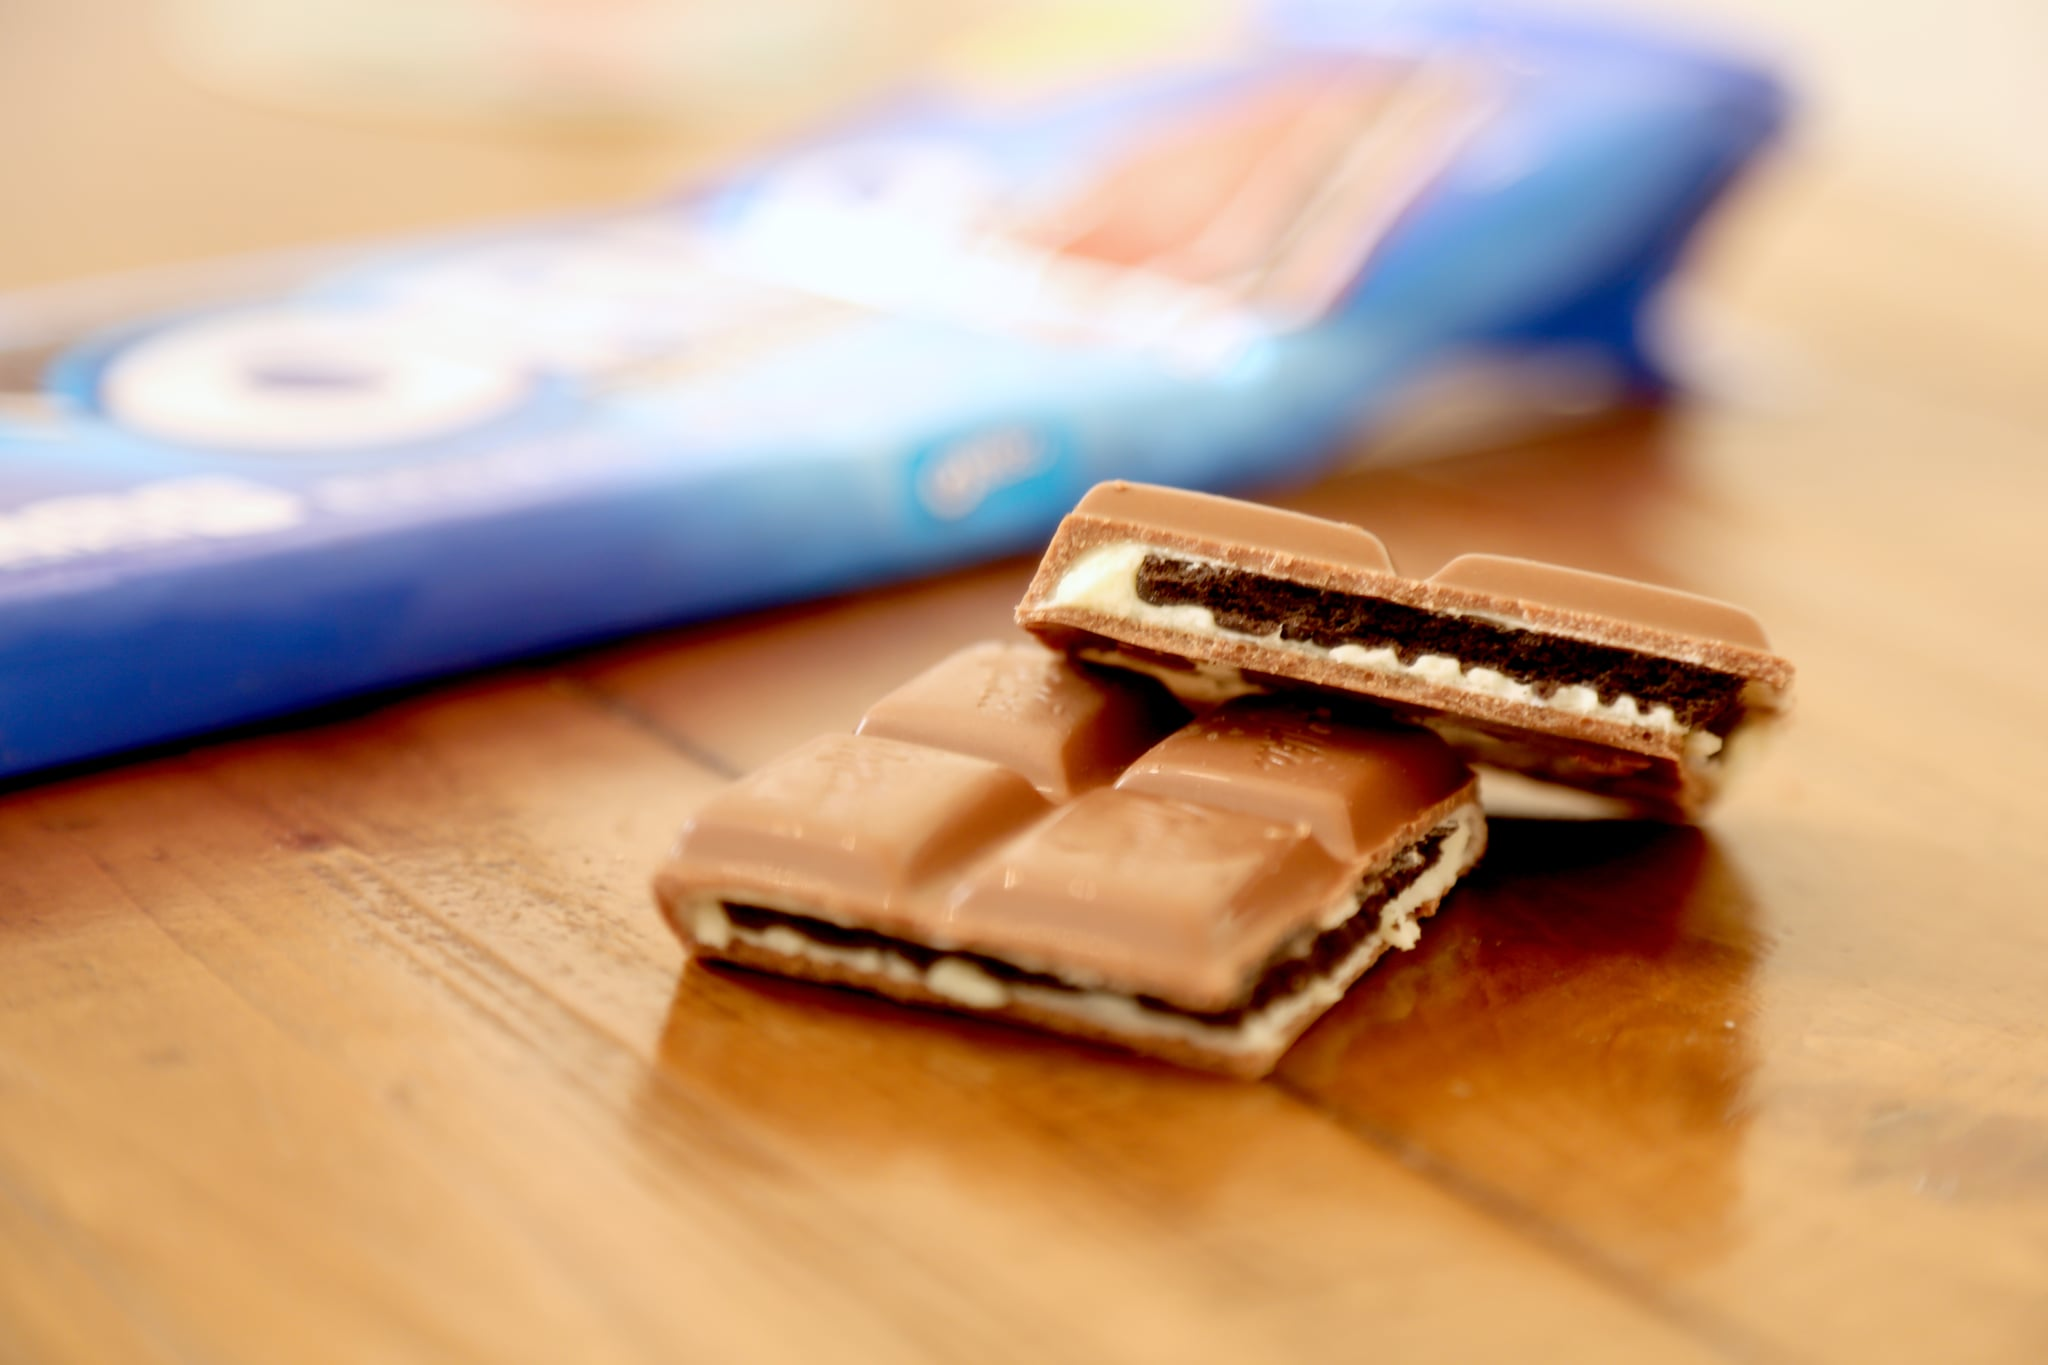 Oreo Releases Candy Bar That's Tastier Than the Original Cookie